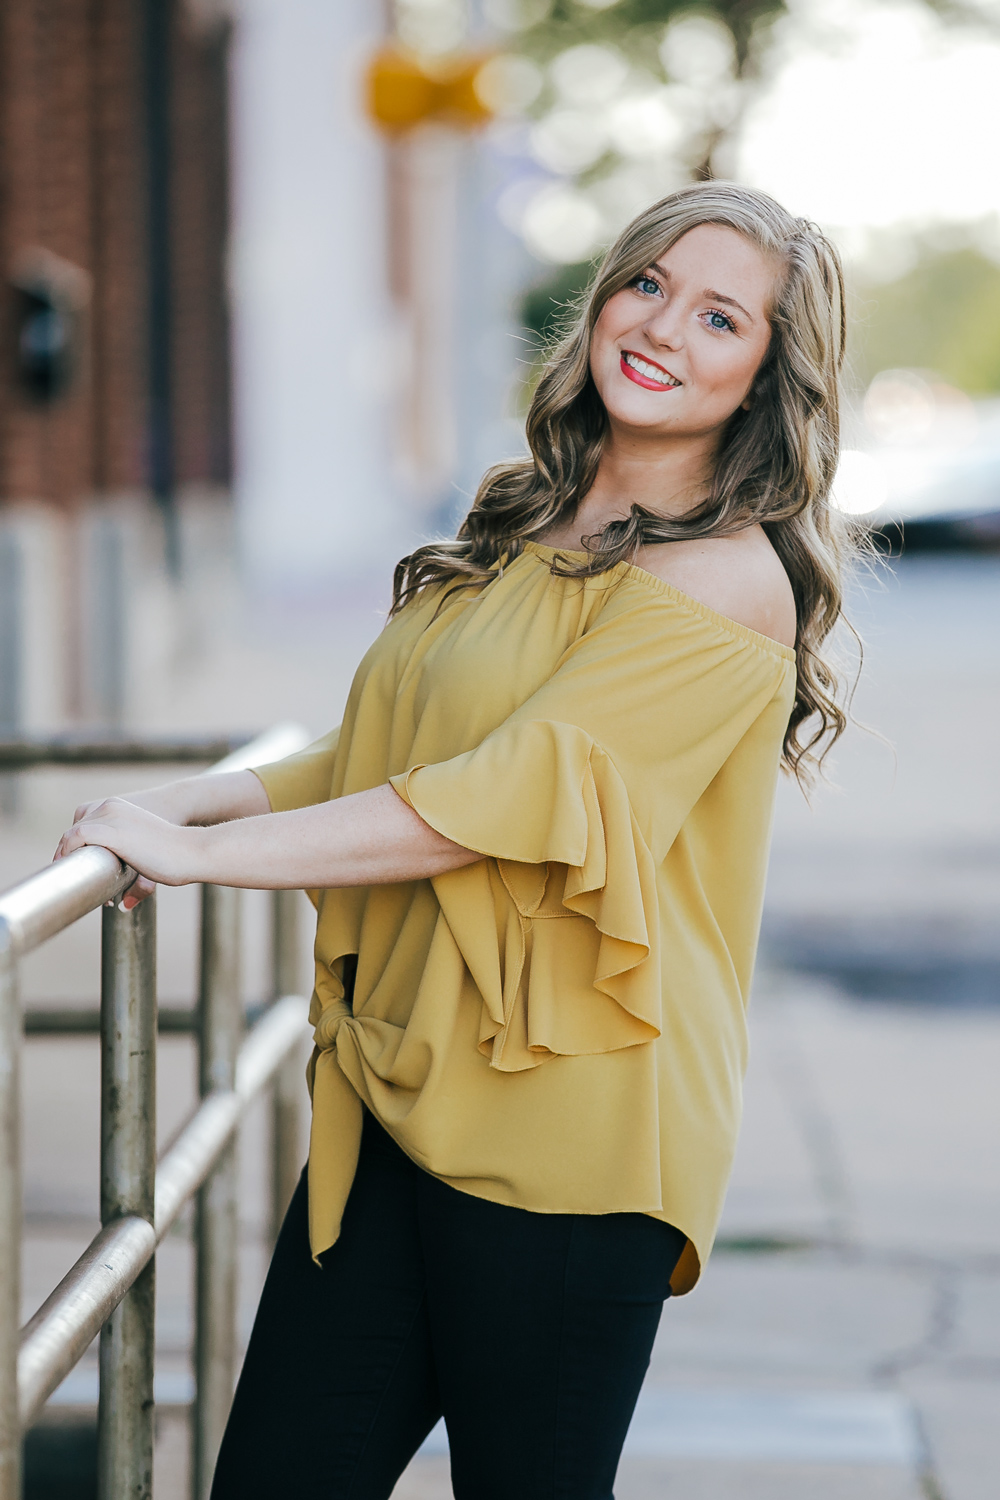 Oklahoma high school senior girl wearing black pants and yellow top, holding onto stair rail in automobile alley in downtown OKC by Amanda Lynn Photography.